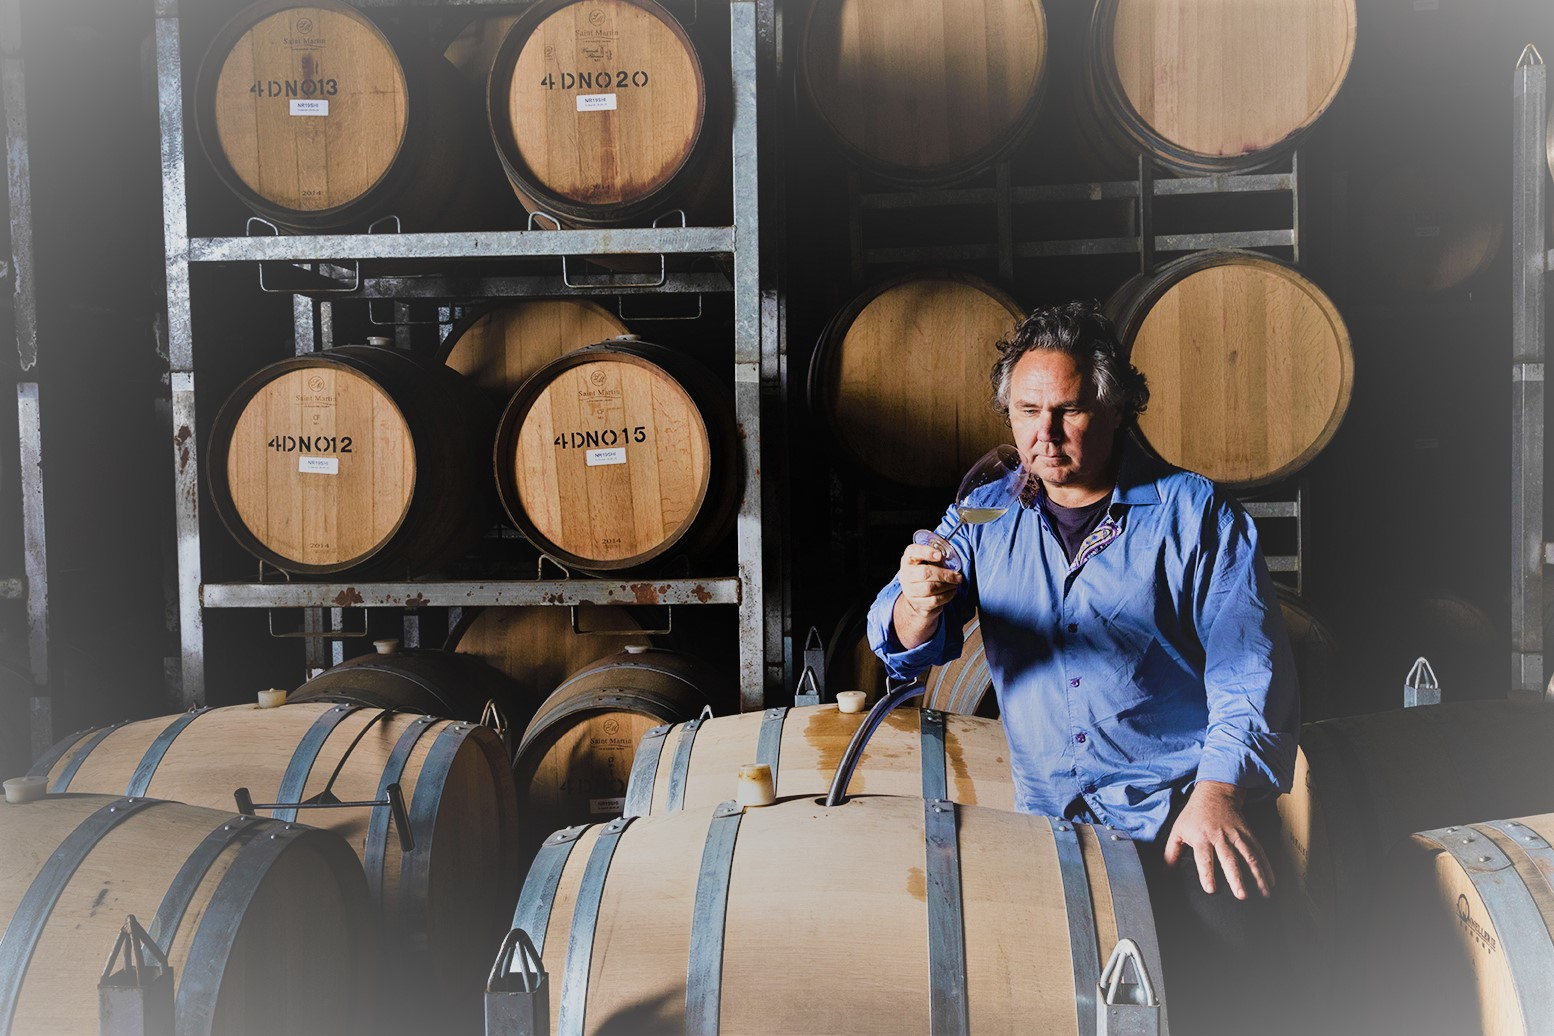 Our stellar line up of winemaker dinners continues this September 30th, as we welcome one of the masters of Margaret River, Bruce Dukes to NOMAD.  After honing his skills at Pierro, as well as a four year stint in California, Bruce founded his own winery and quickly began producing some of the most polished and complete wines in the region. Bruce Dukes has received high praise this year when his Domaine Naturaliste was awarded 'best value winery' in the country by the Halliday Wine Companion Awards.  These stunning wines from the Margaret River are some of the country's most highly acclaimed vintages. We will be pouring a selection of different wines to match with a special menu designed by Chef Jacqui for this evening only.  Dinner will commence promptly at 6.30pm at NOMAD restaurant tickets are $145 per person.  If you have any questions or there is anything we can help you with, give us a call.